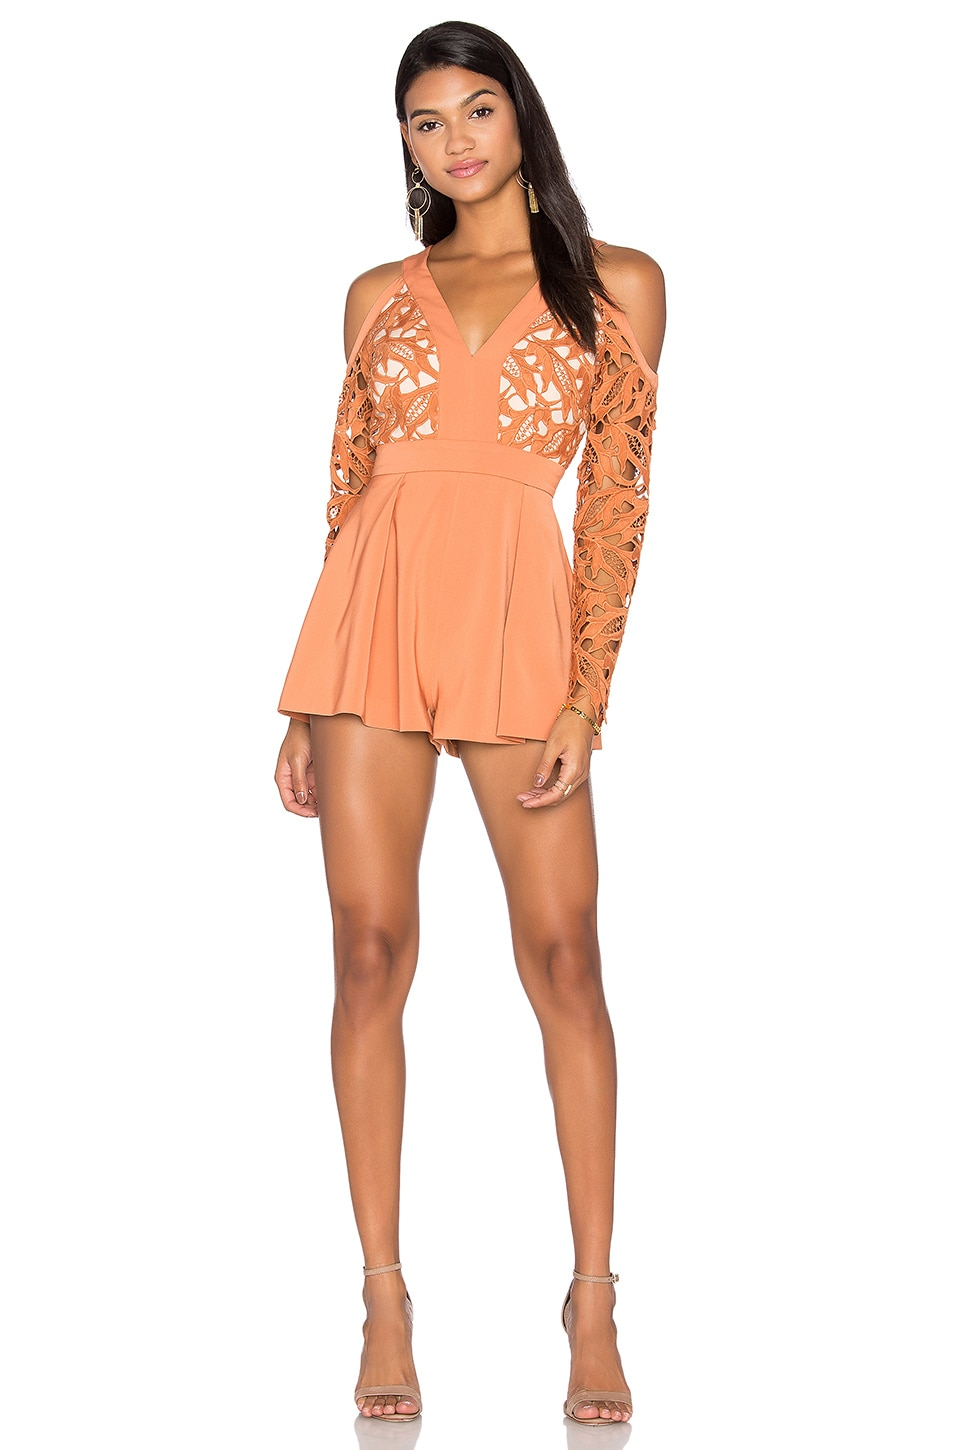 The Moment Lace Romper by keepsake